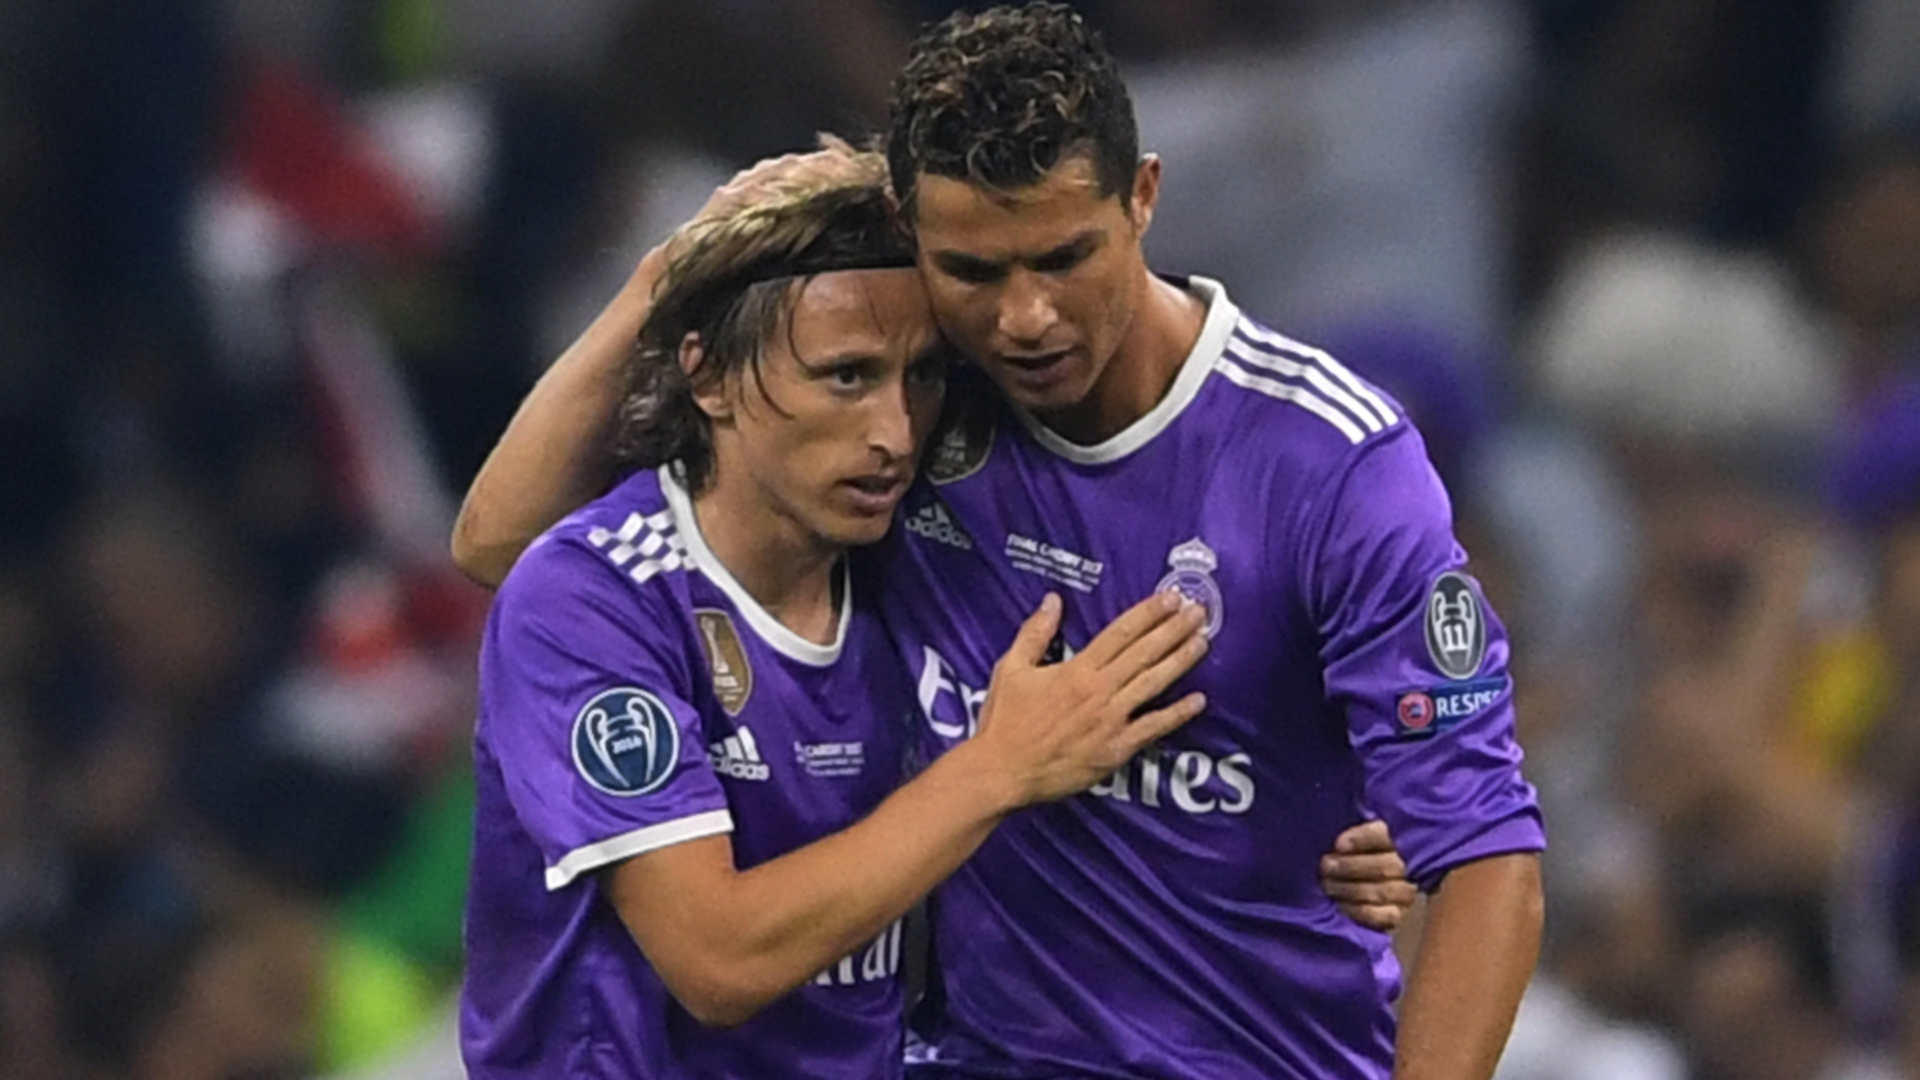 Real Madrid knew we'd win trophies without Ronaldo, says Modric